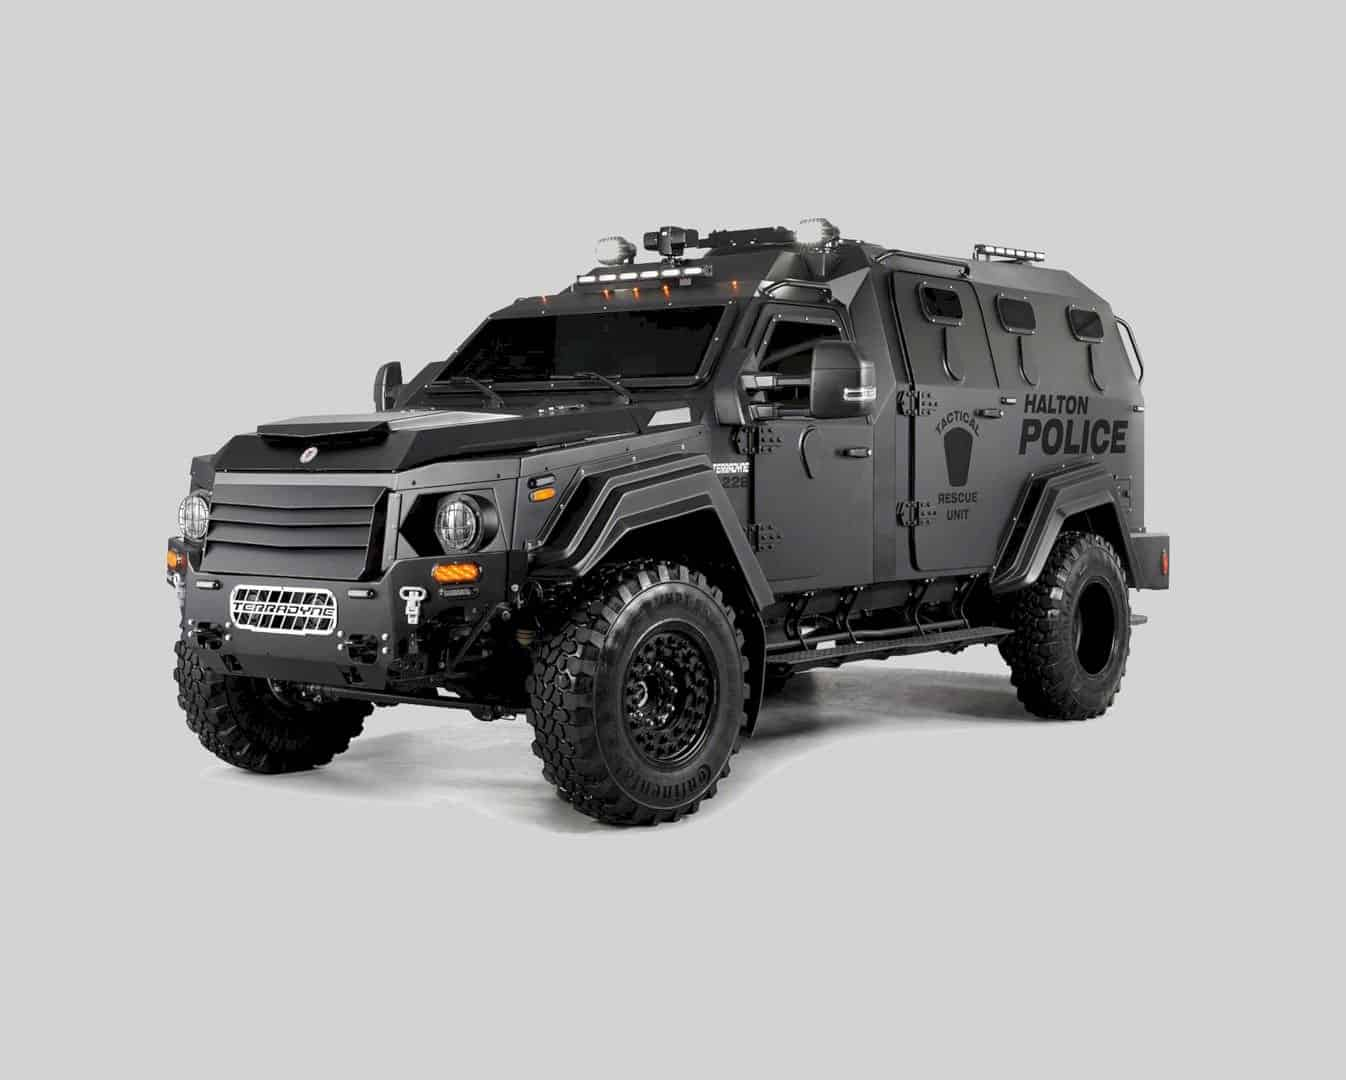 Gurkha MPV from Terradyne Might Question The Resilient of Your Usual MPV